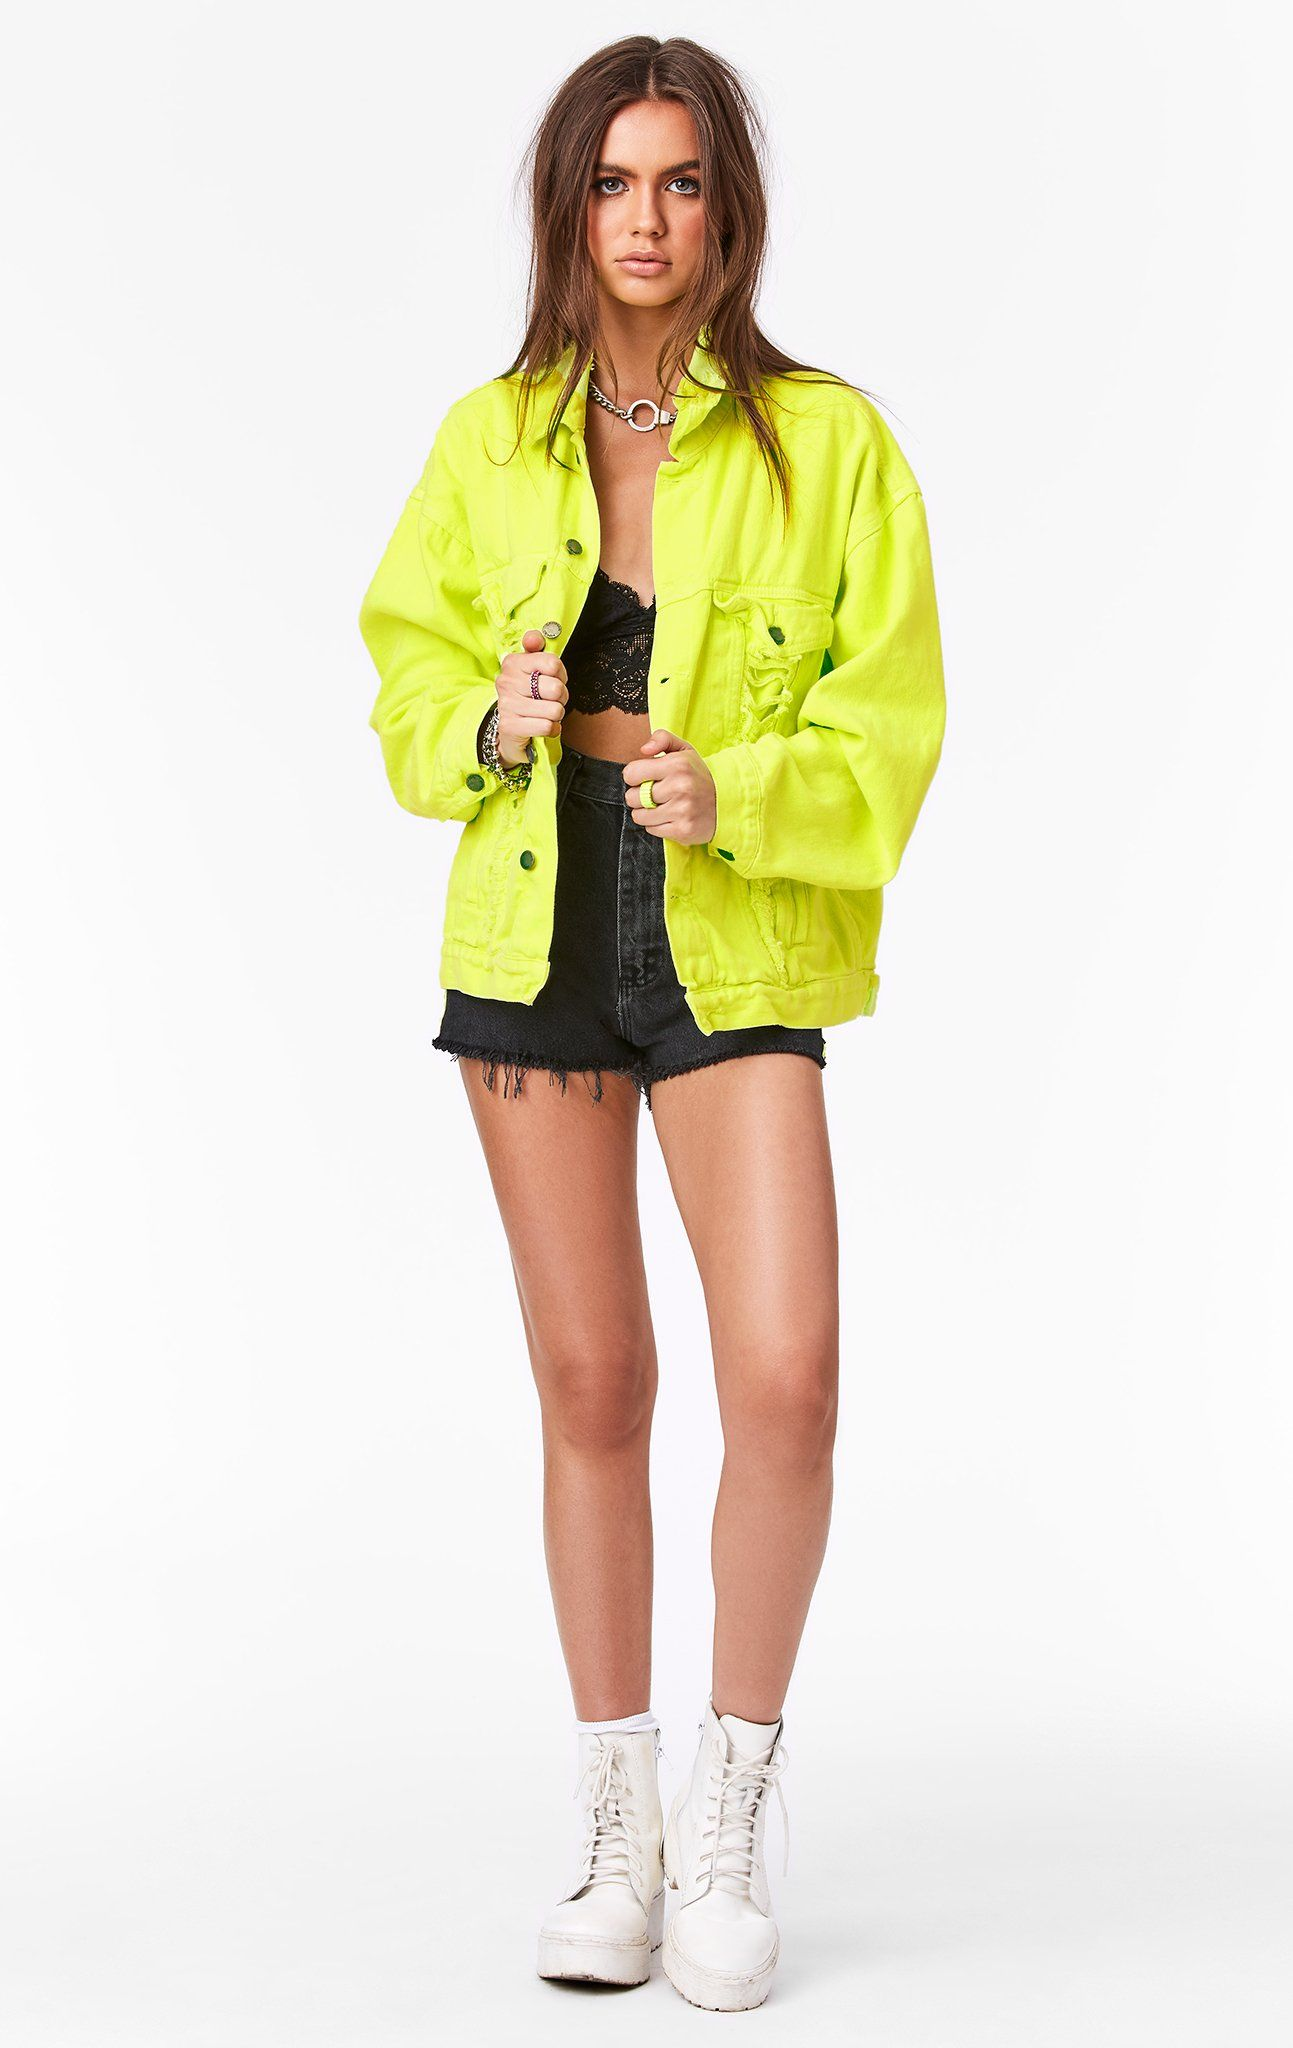 Audrey Oversized Denim Jacket In Overdye Neon Lime Please Note Neon Color May Transfer Style Car Jean Jacket Outfits Oversized Denim Jacket Jacket Outfits [ 2048 x 1293 Pixel ]